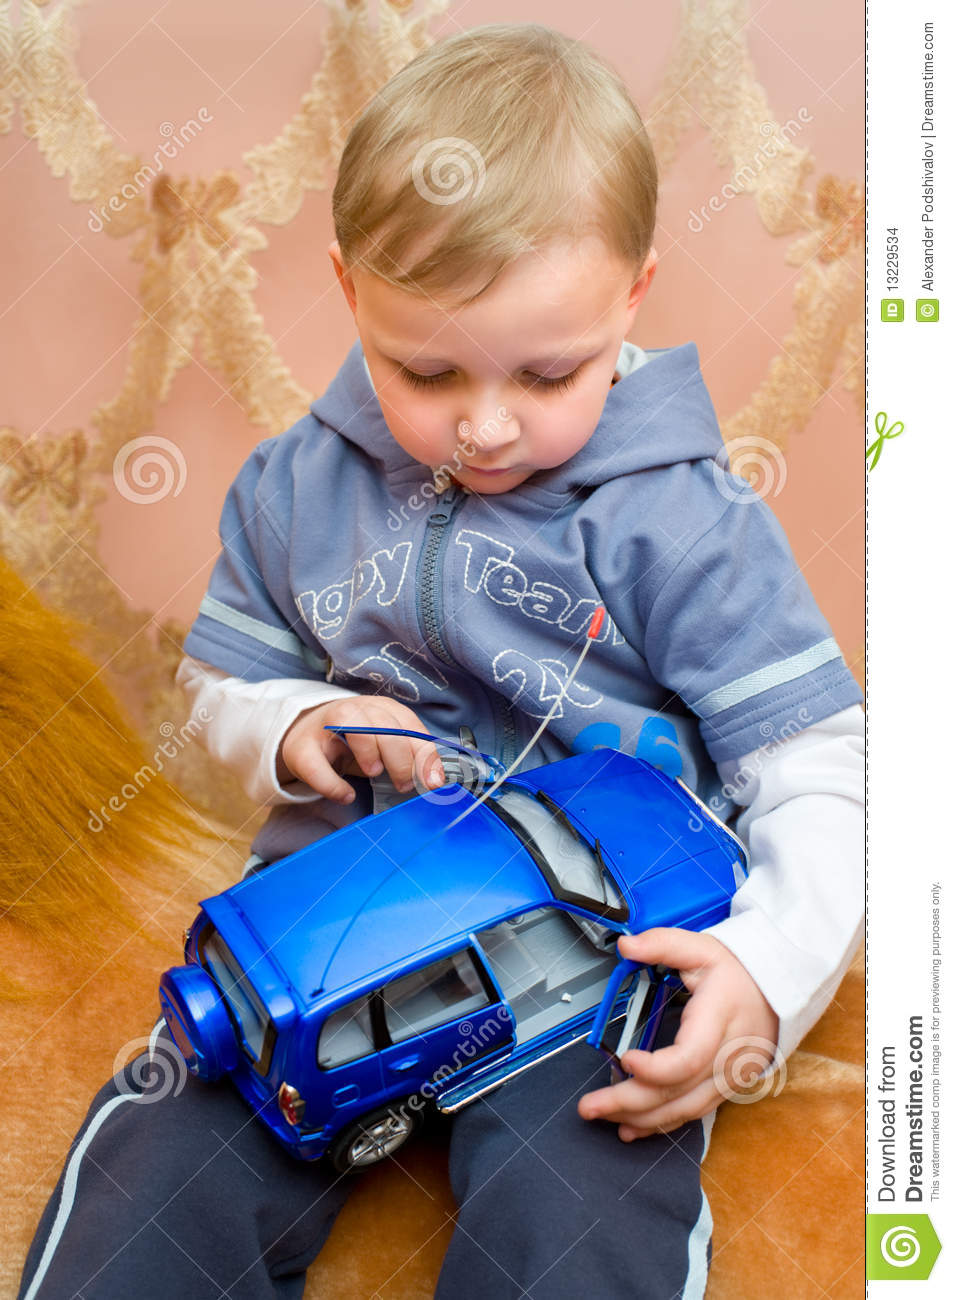 Little Boy With Toy Car : Little boy with toy car stock images image